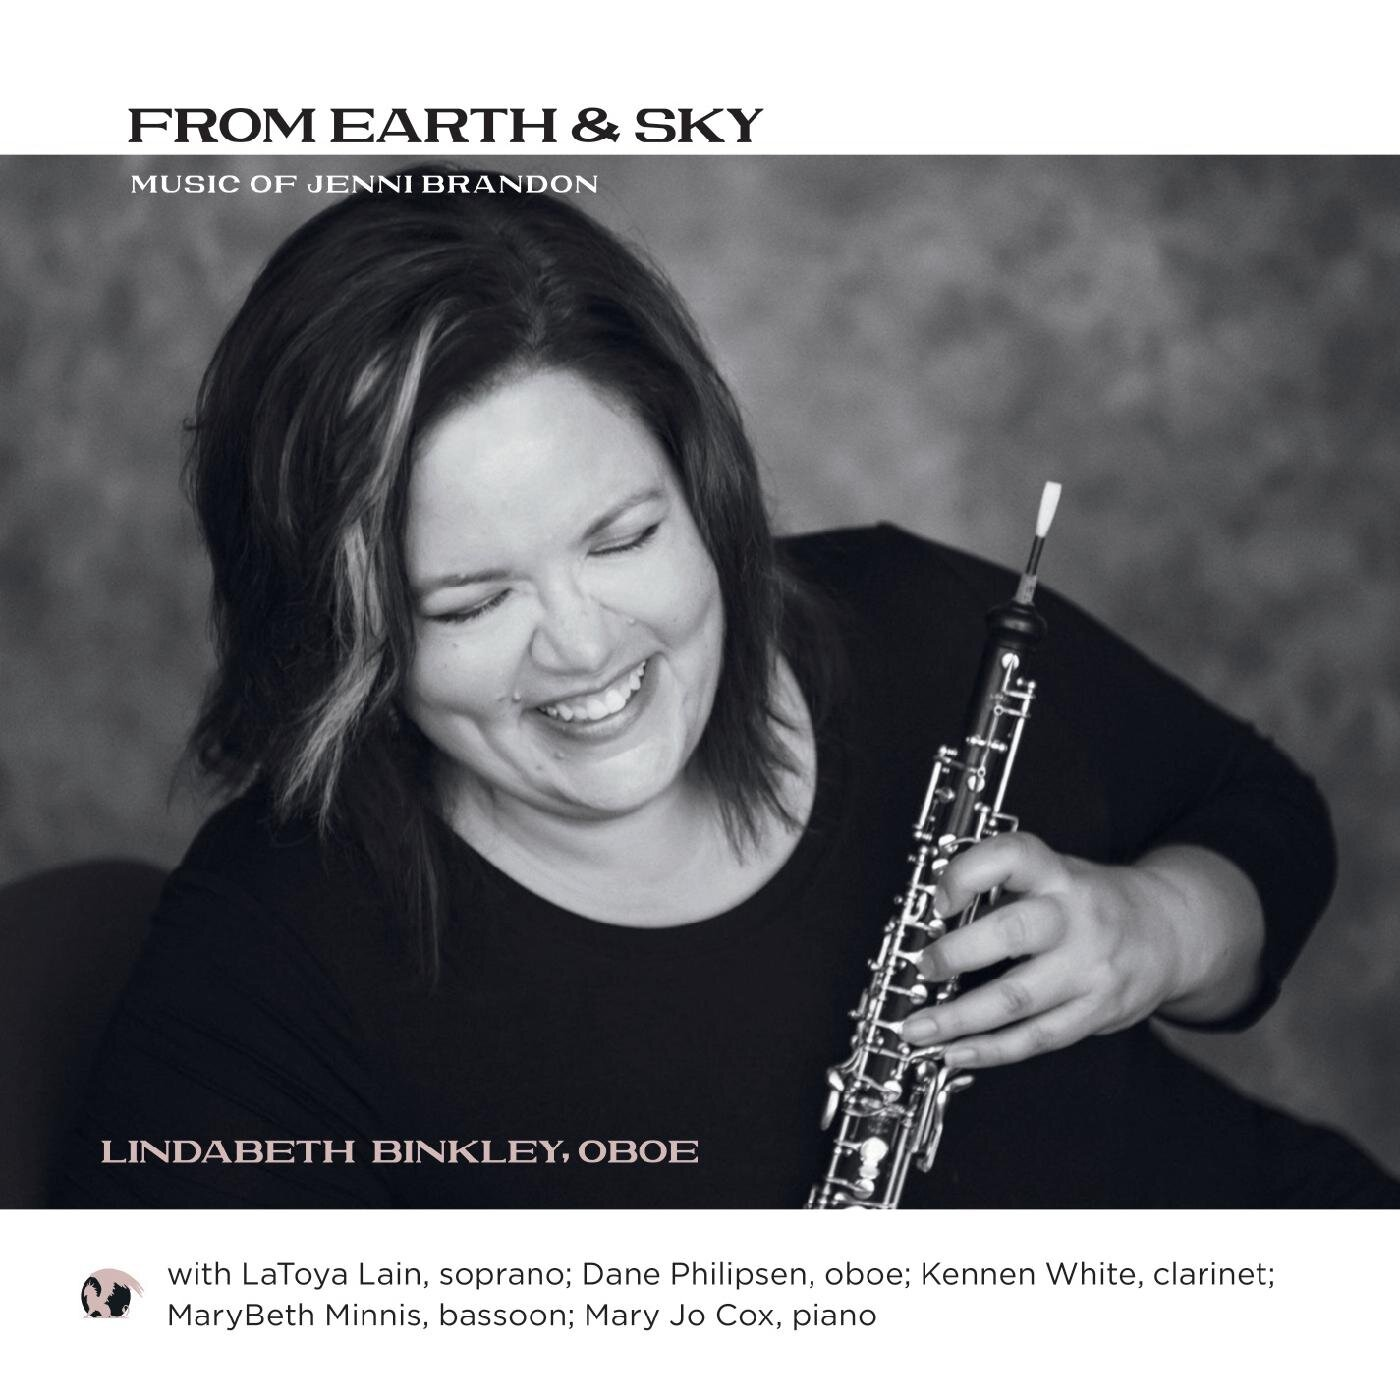 NEW CD! FROM EARTH & SKY: MUSIC OF JENNI BRANDON on Blue Griffin Recording label